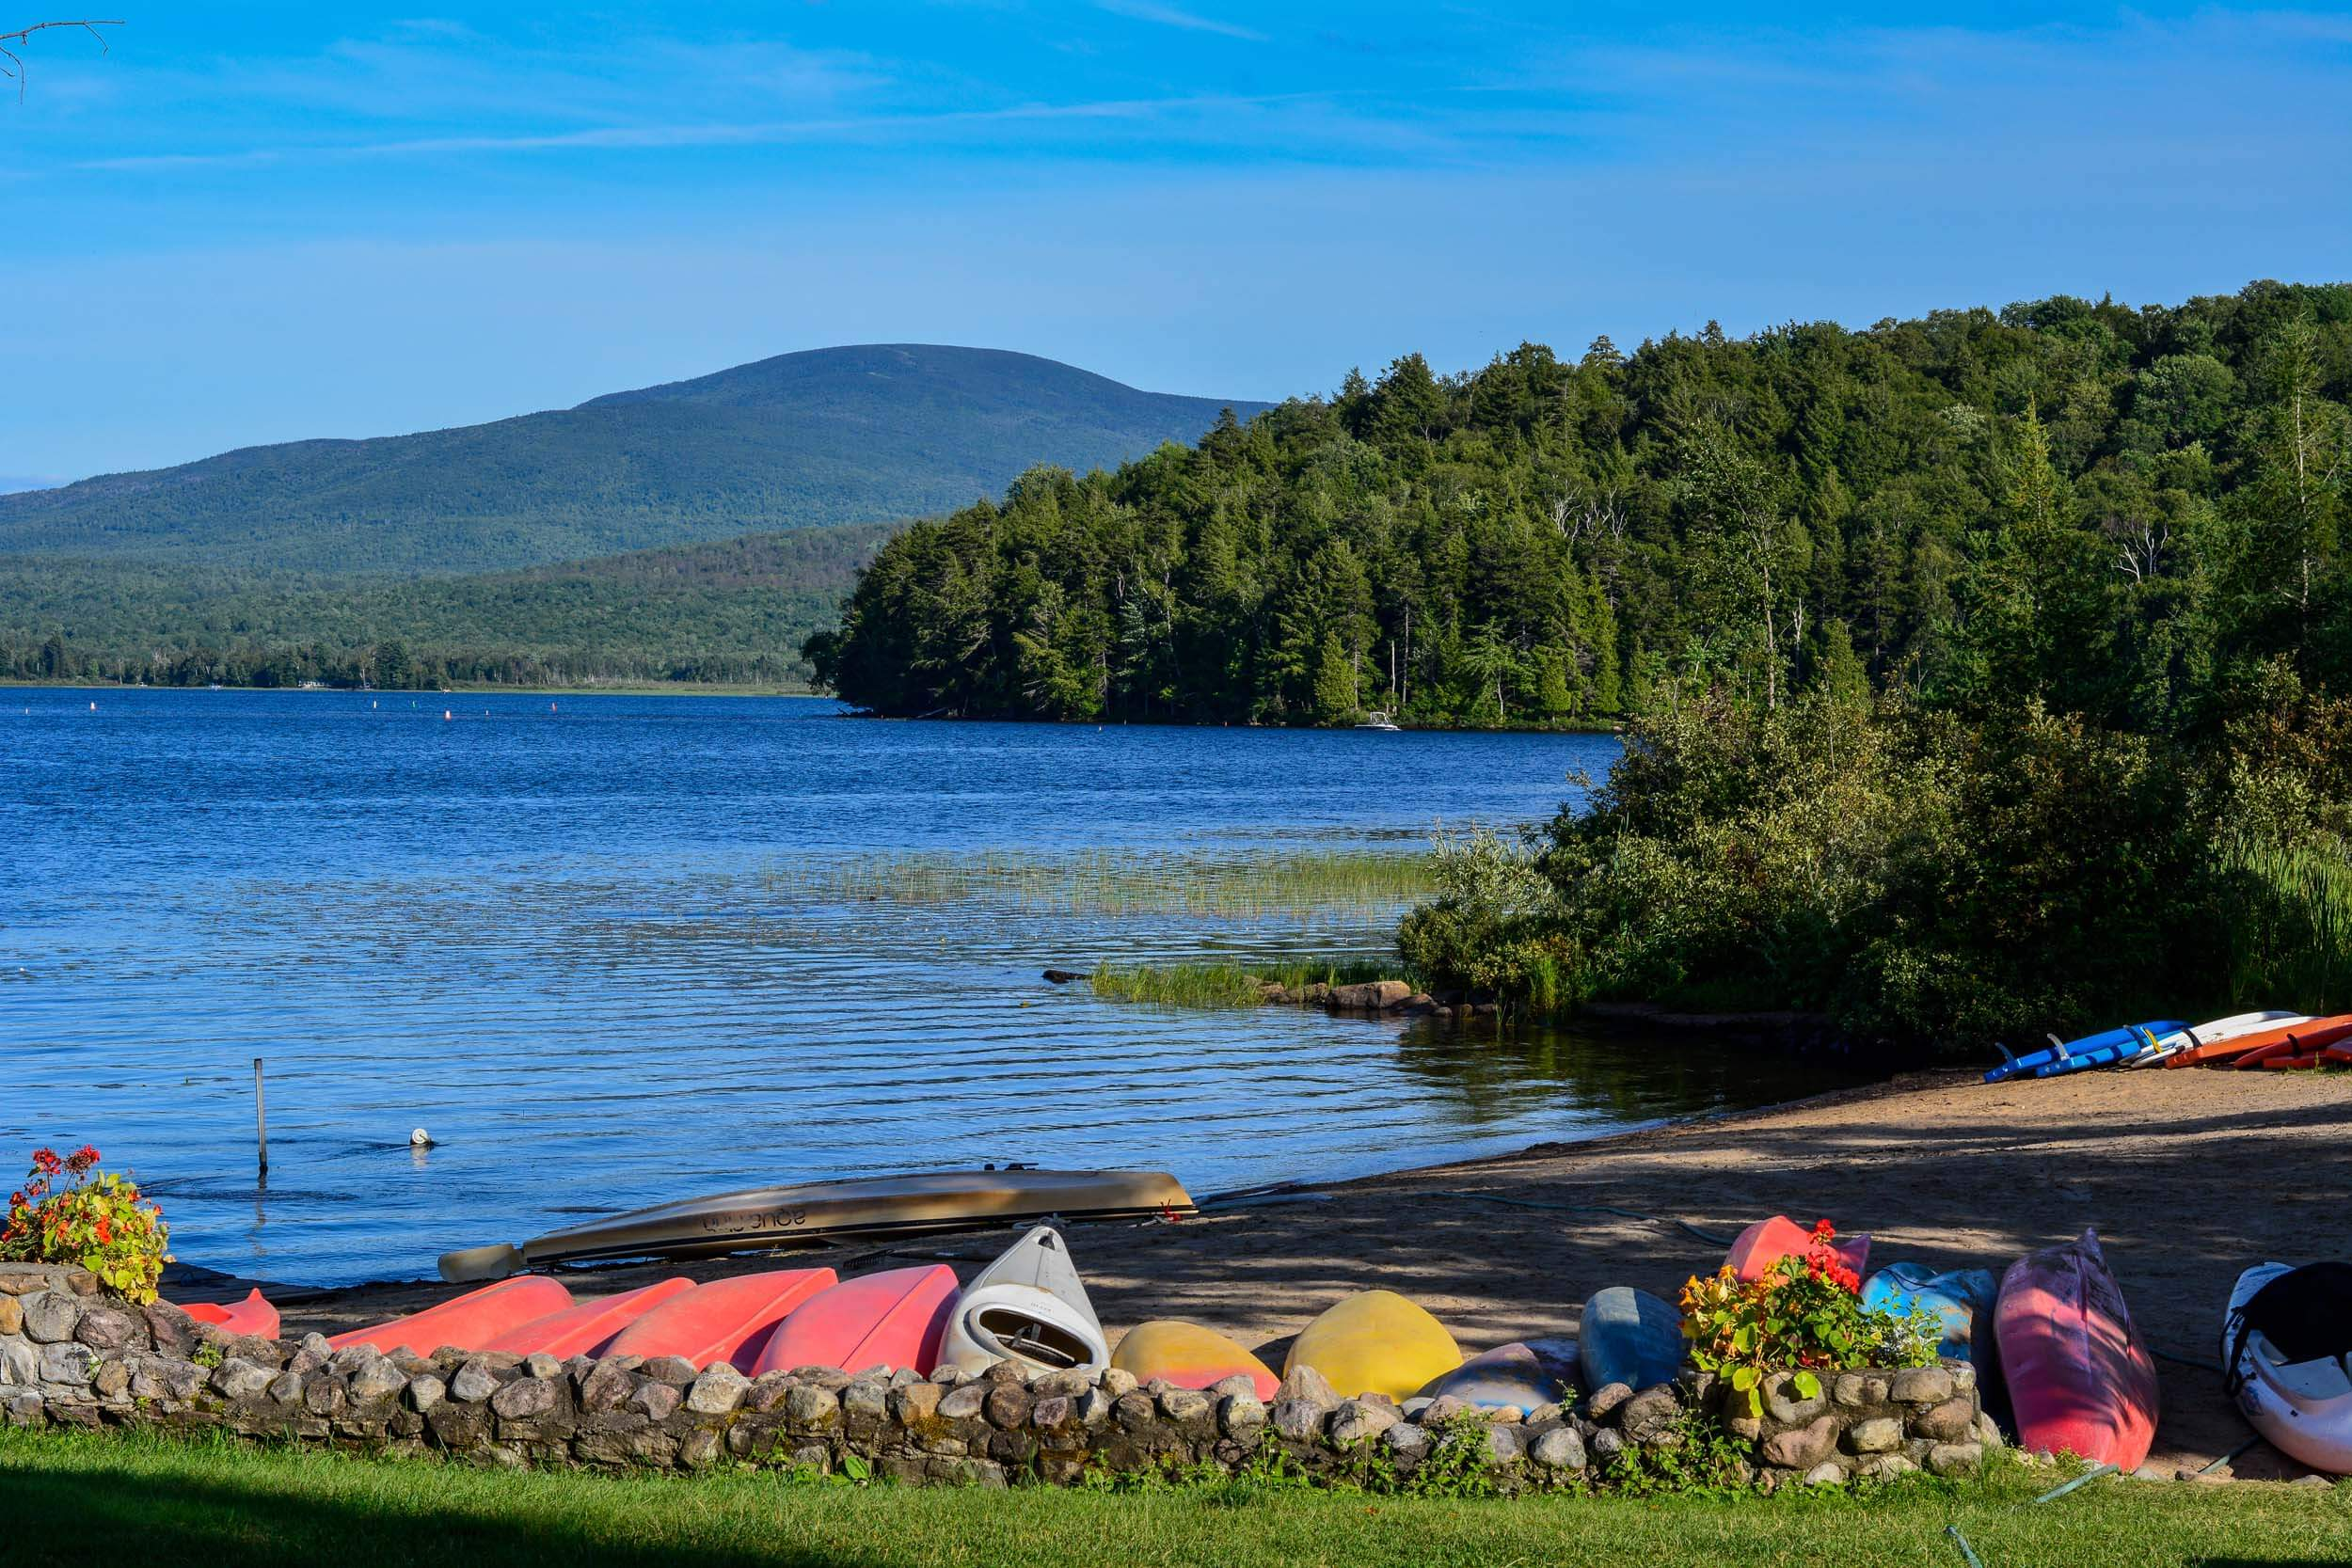 The Best Summer Sleepaway Camps for 2019 in New York and the